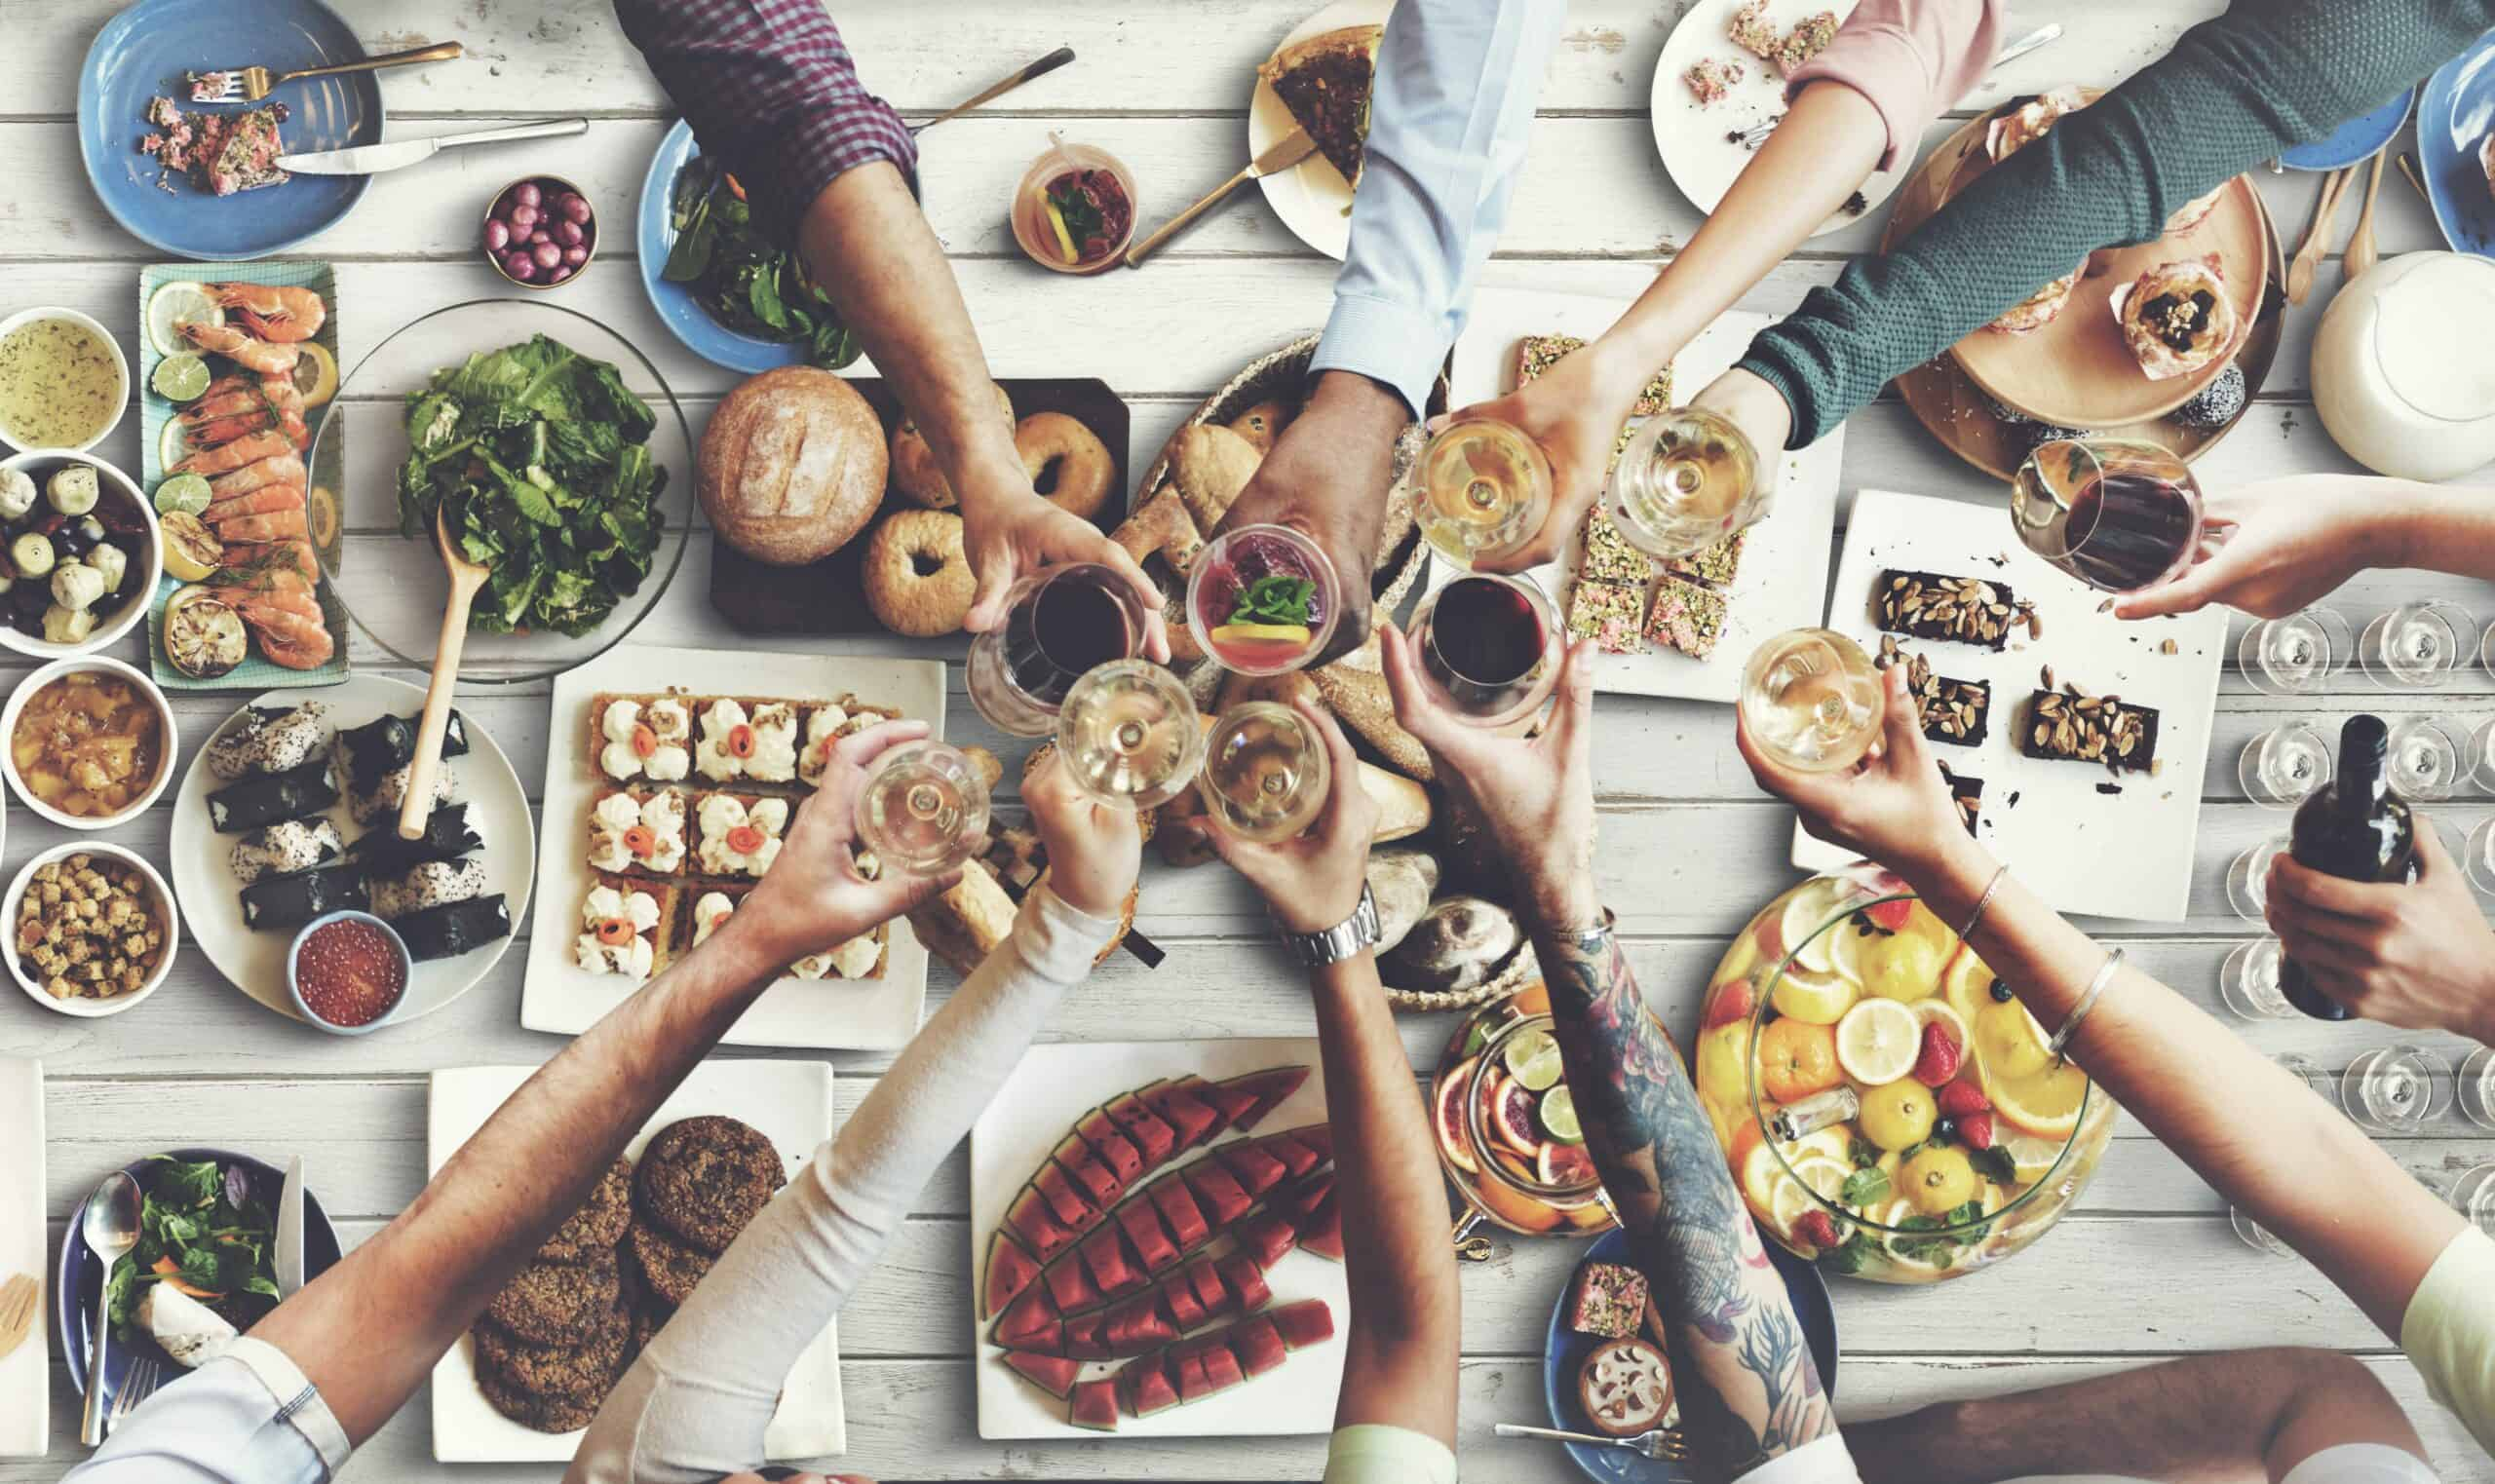 friends joy eating dining happiness intuitive eating